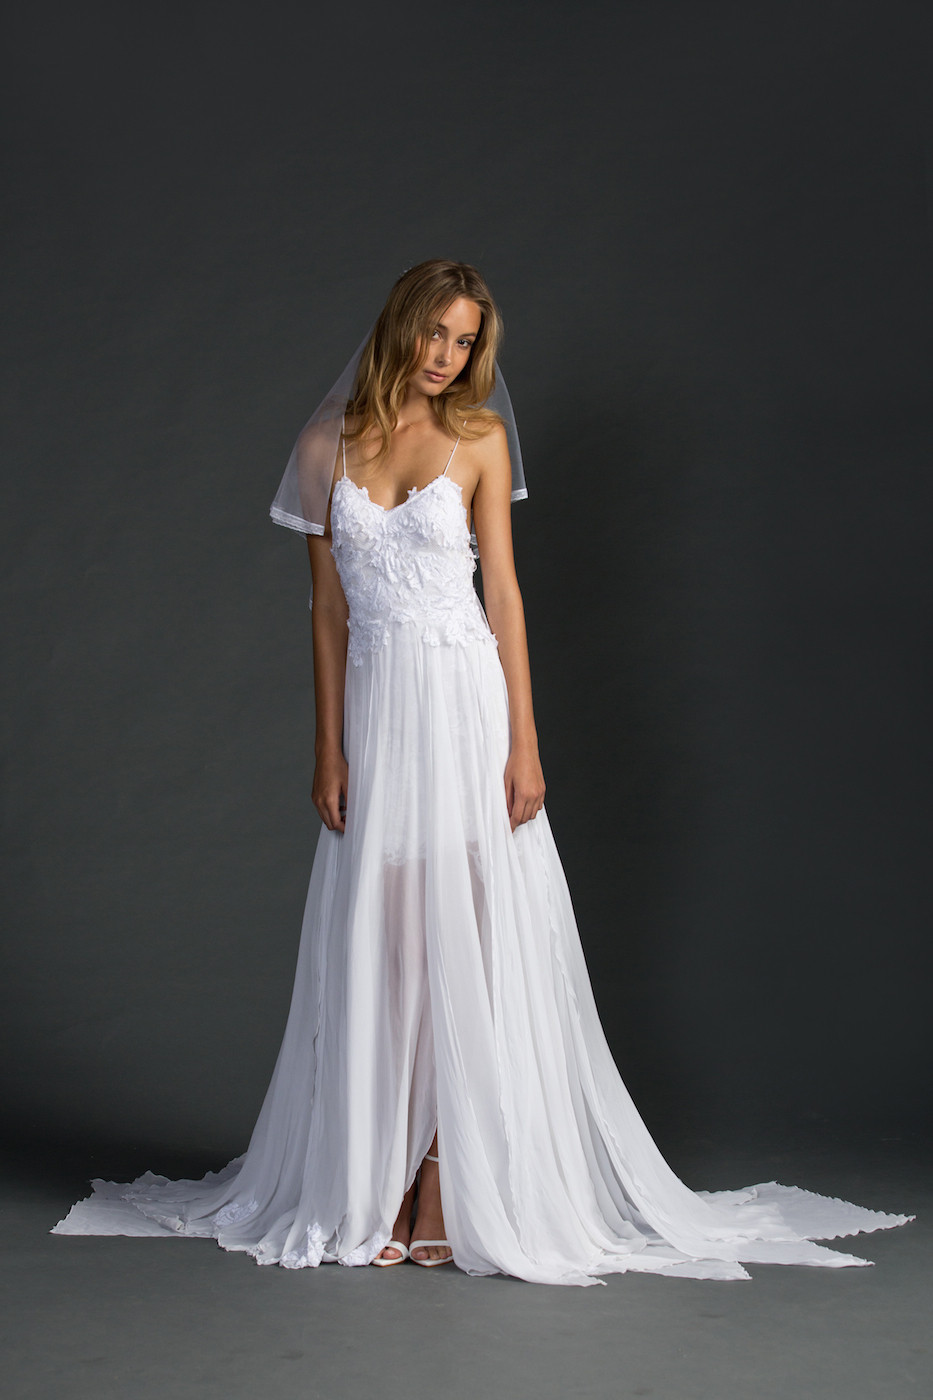 Spaghetti Strap Backless Wedding Dress  INM 159 Hot Spaghetti Strap Appliques Chiffon y